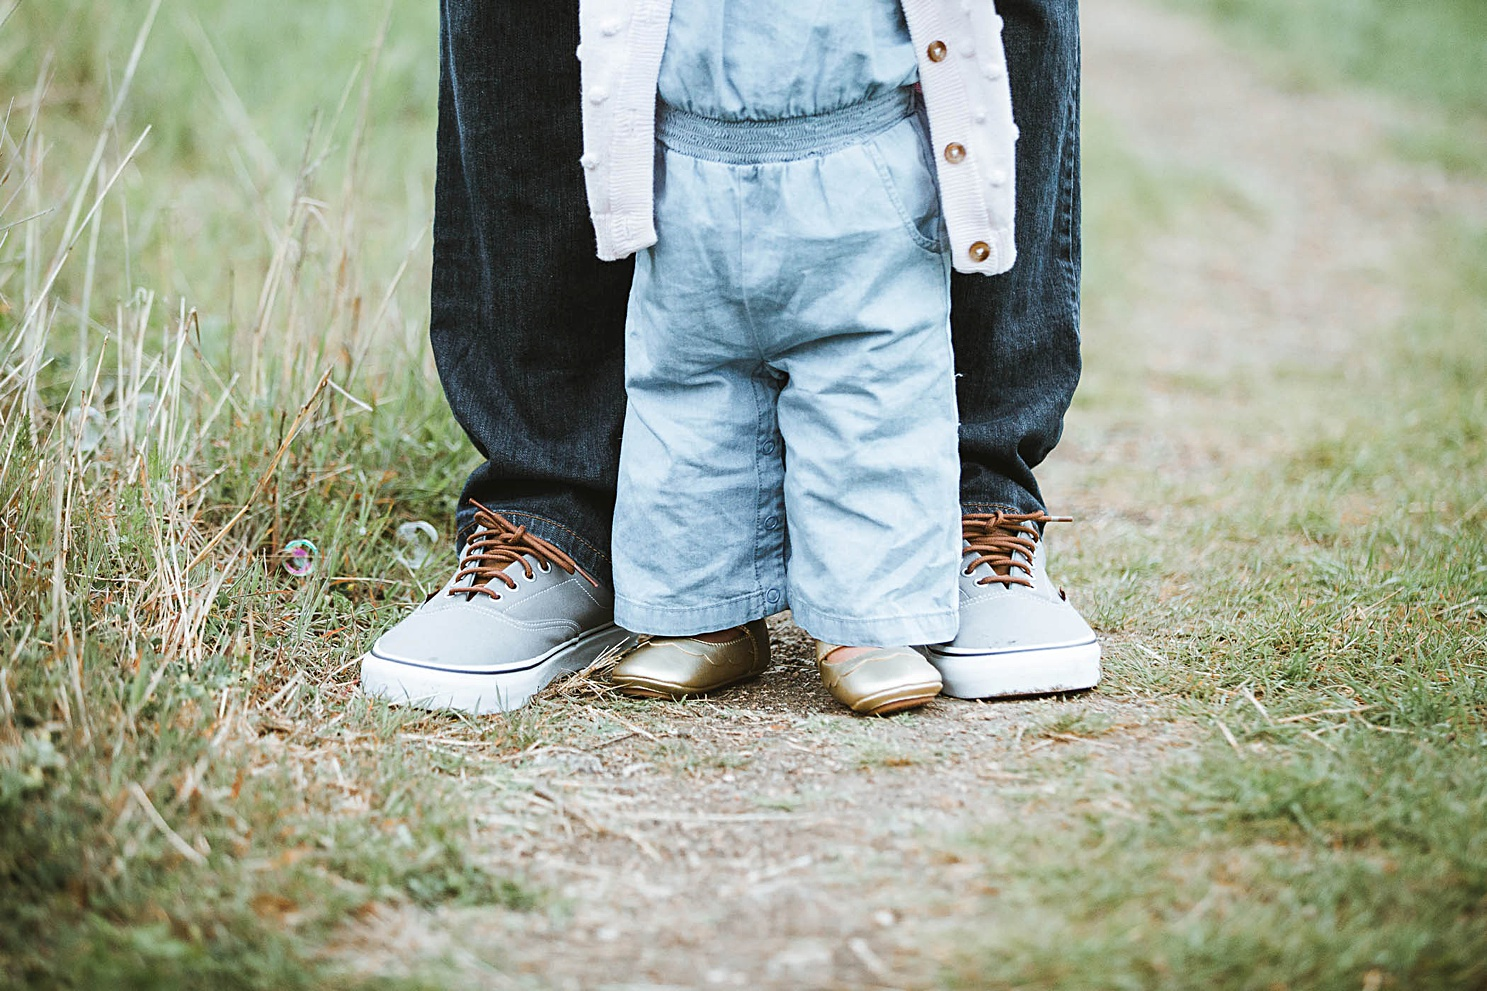 austin-outdoor-family-photography-session_0307.jpg